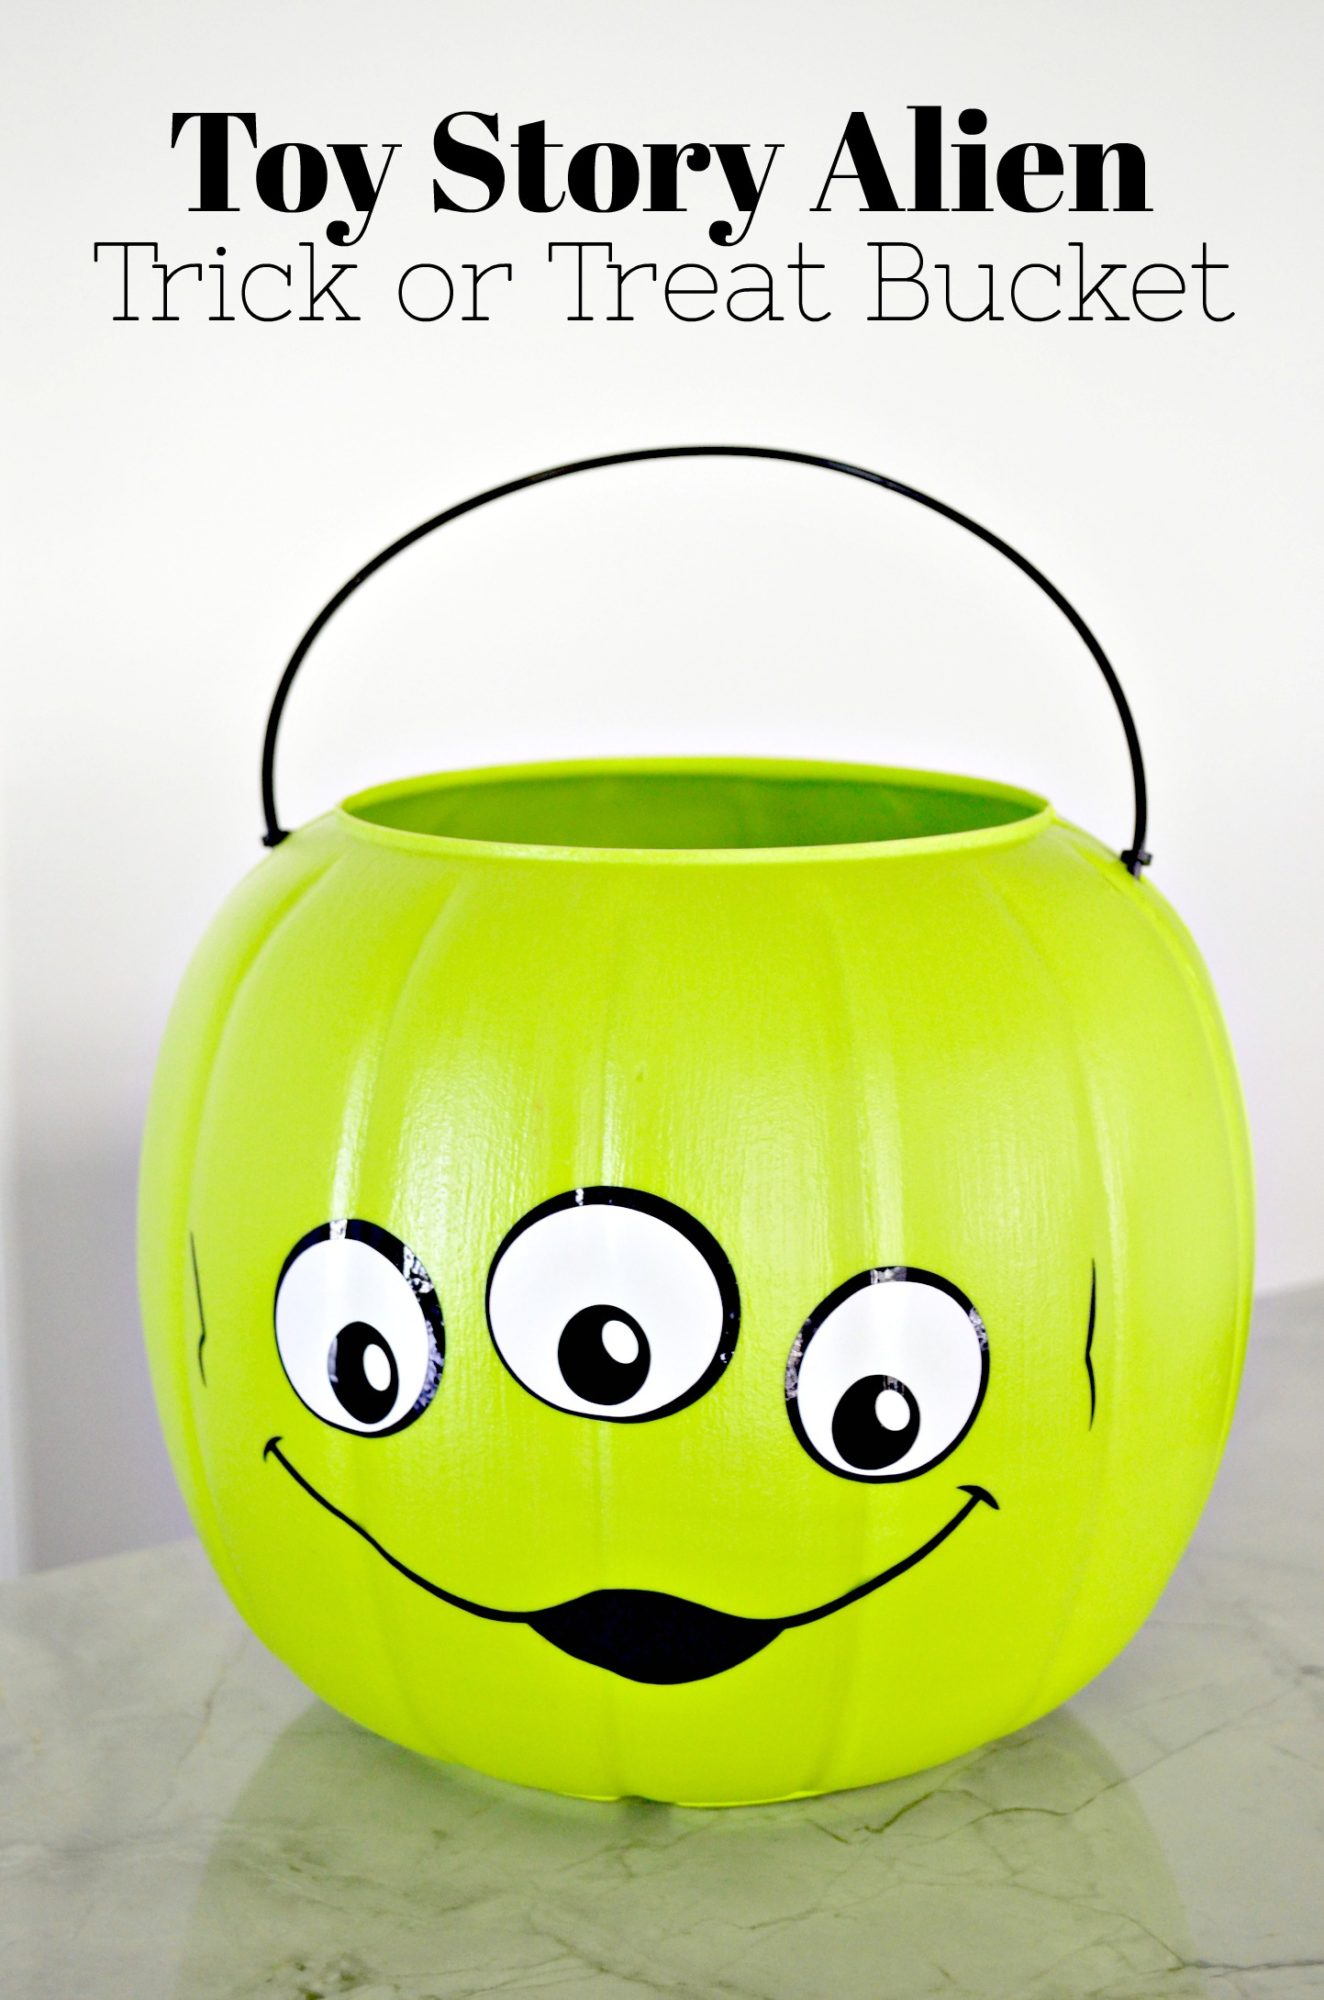 Toy Story Alien Trick or Treat Bucket